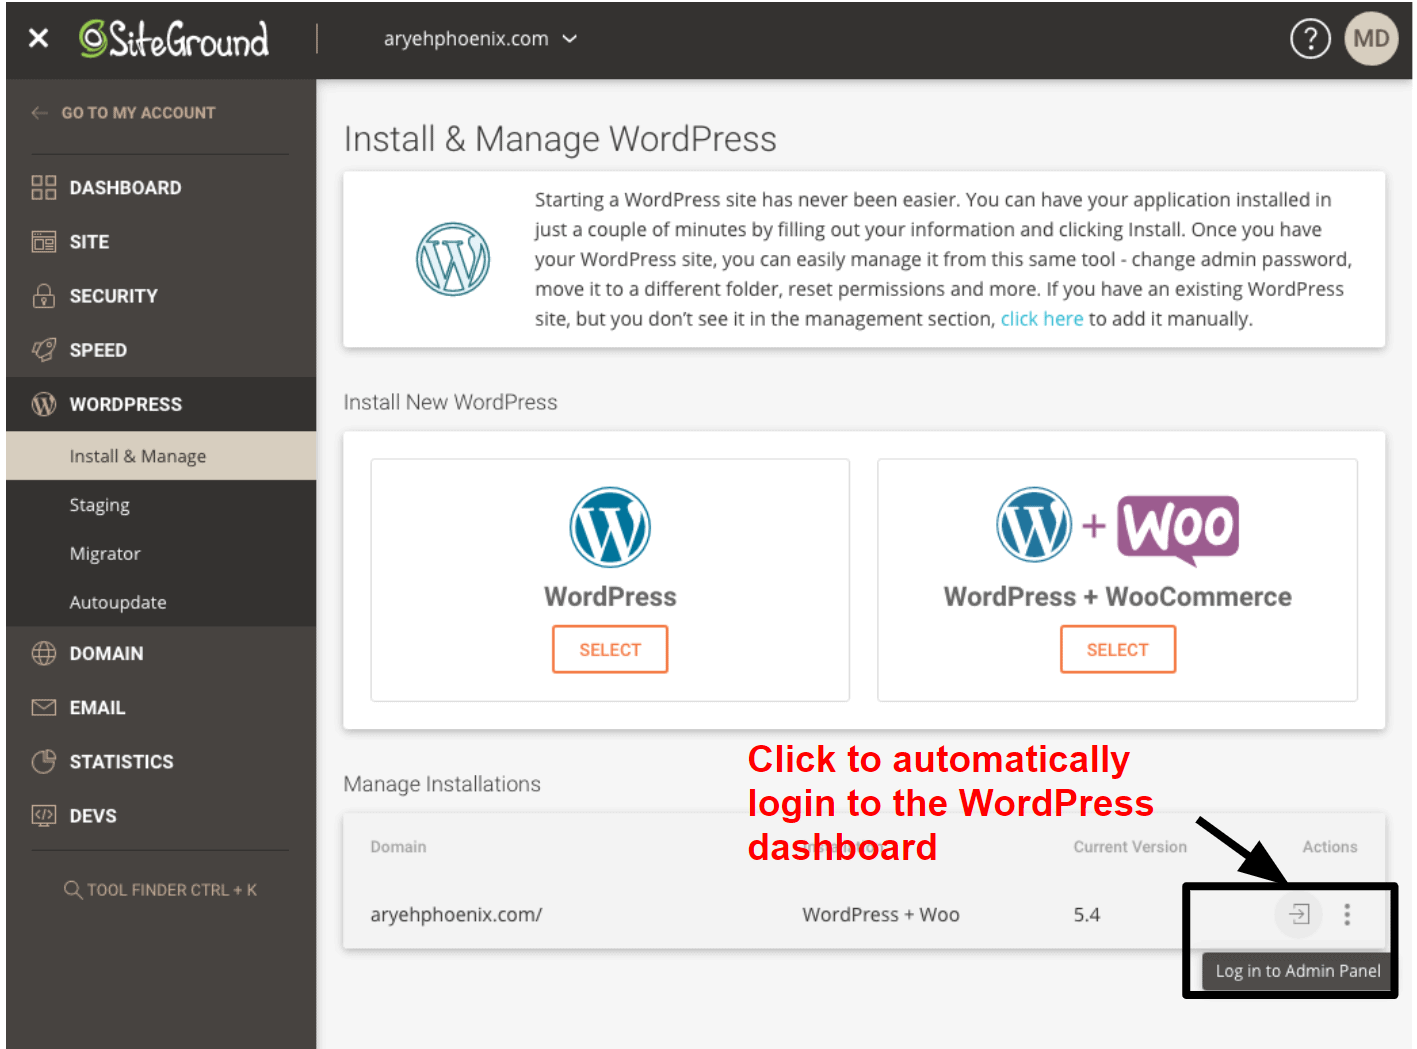 SiteGround offers a one-click login option for your WordPress dashboard